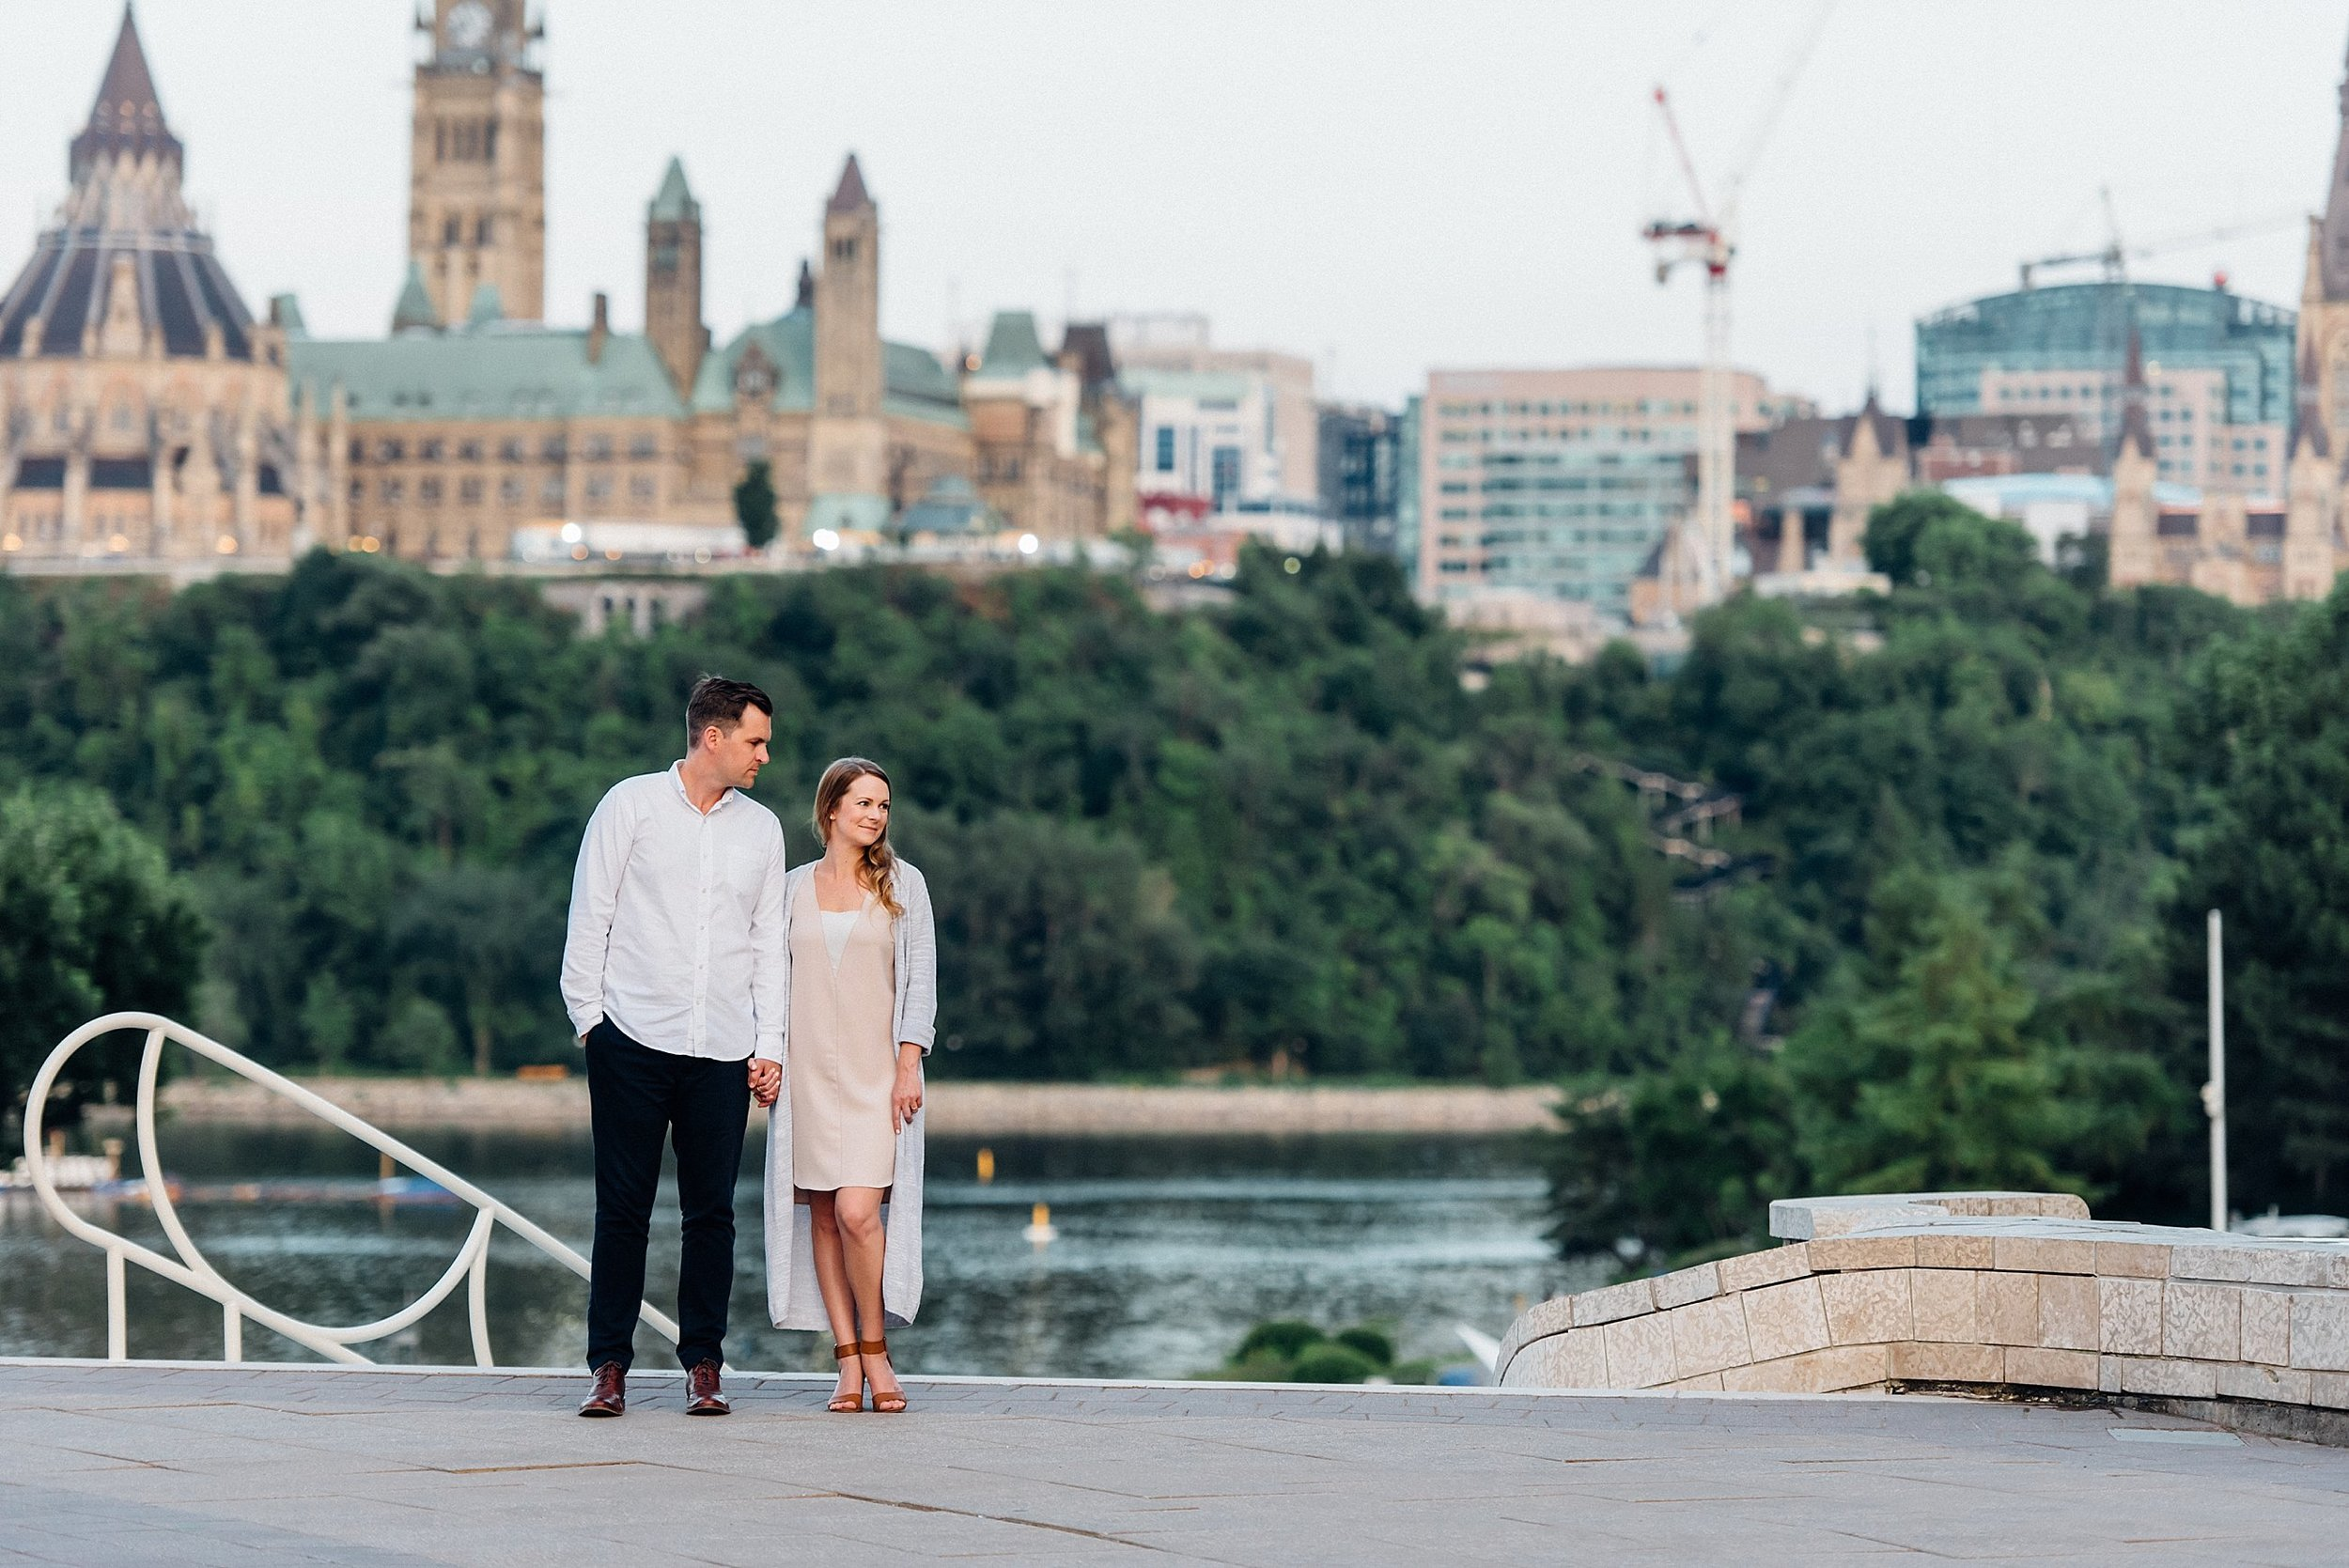 Ali and Batoul Photography - light, airy, indie documentary Ottawa wedding photographer_0331.jpg